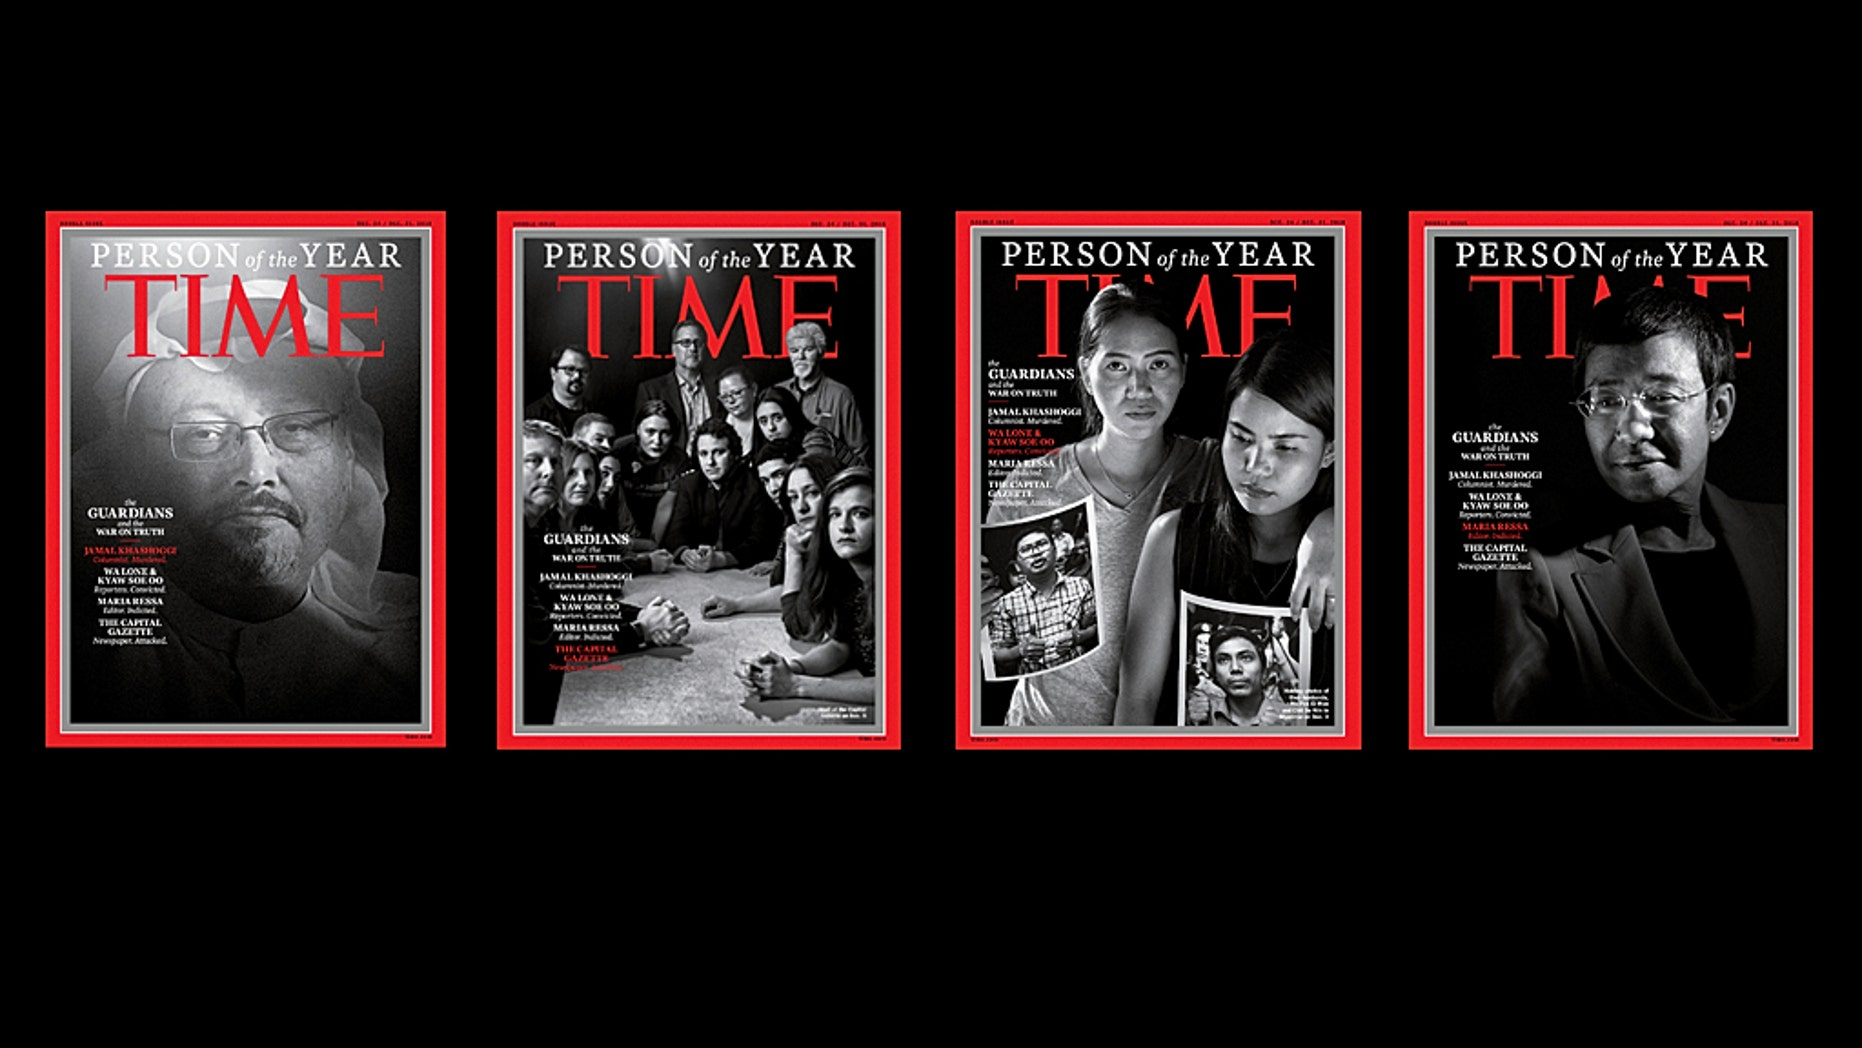 'Guardians and War on Truth' Named Time's 'Person of the Year'